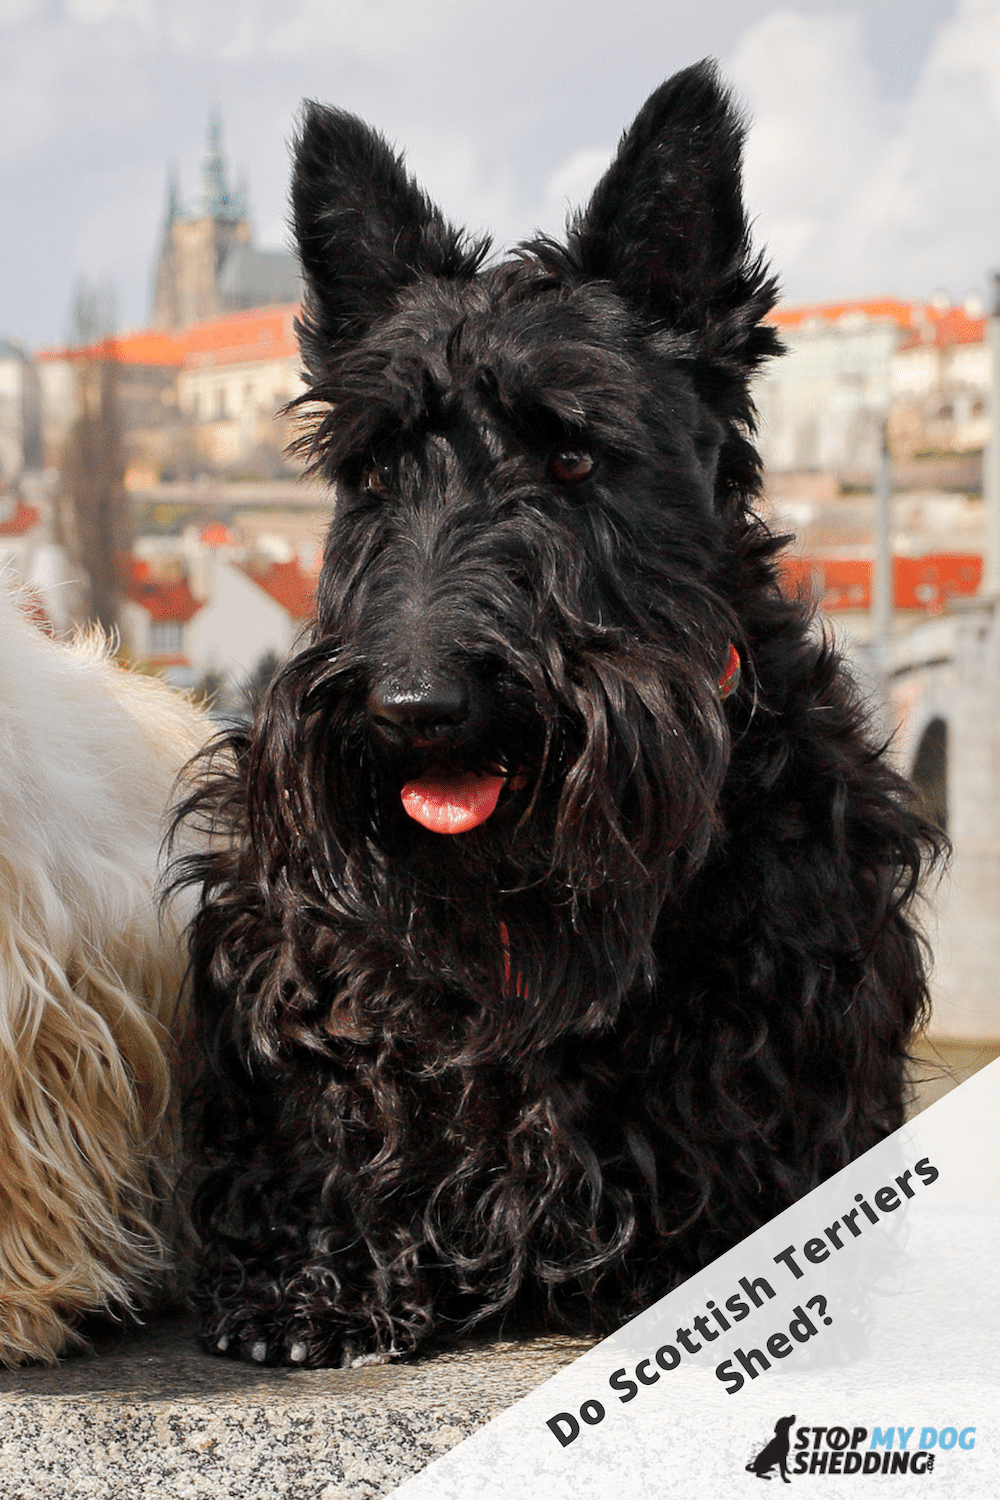 Do Scottish Terriers Shed Lots? (Scottie Shedding)